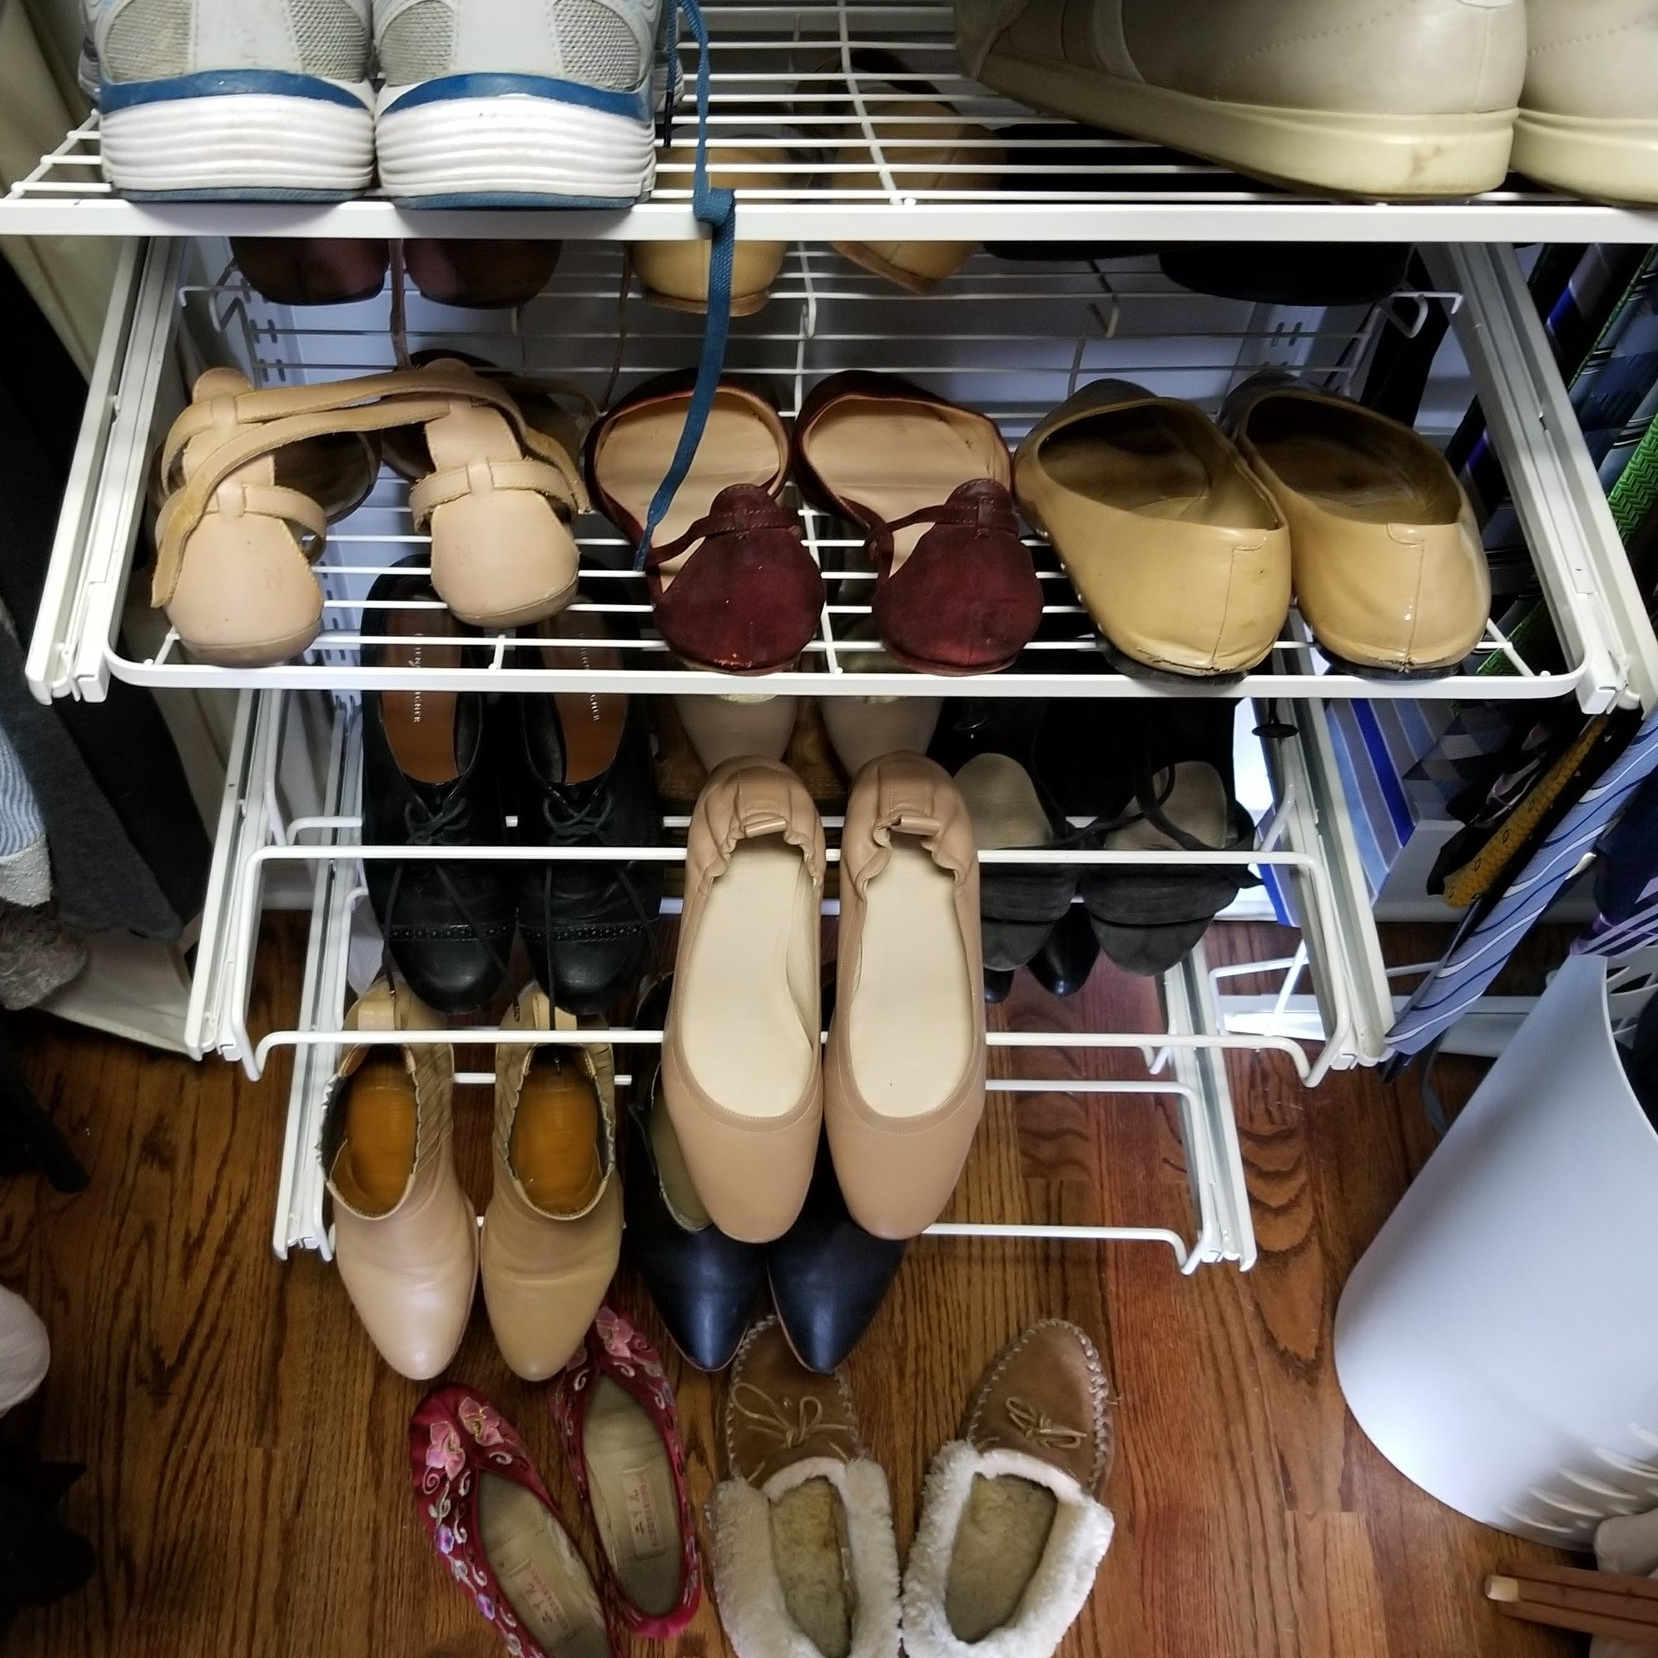 27 pairs of shoes. - That's my count. Is that a lot? It's hard to tell.